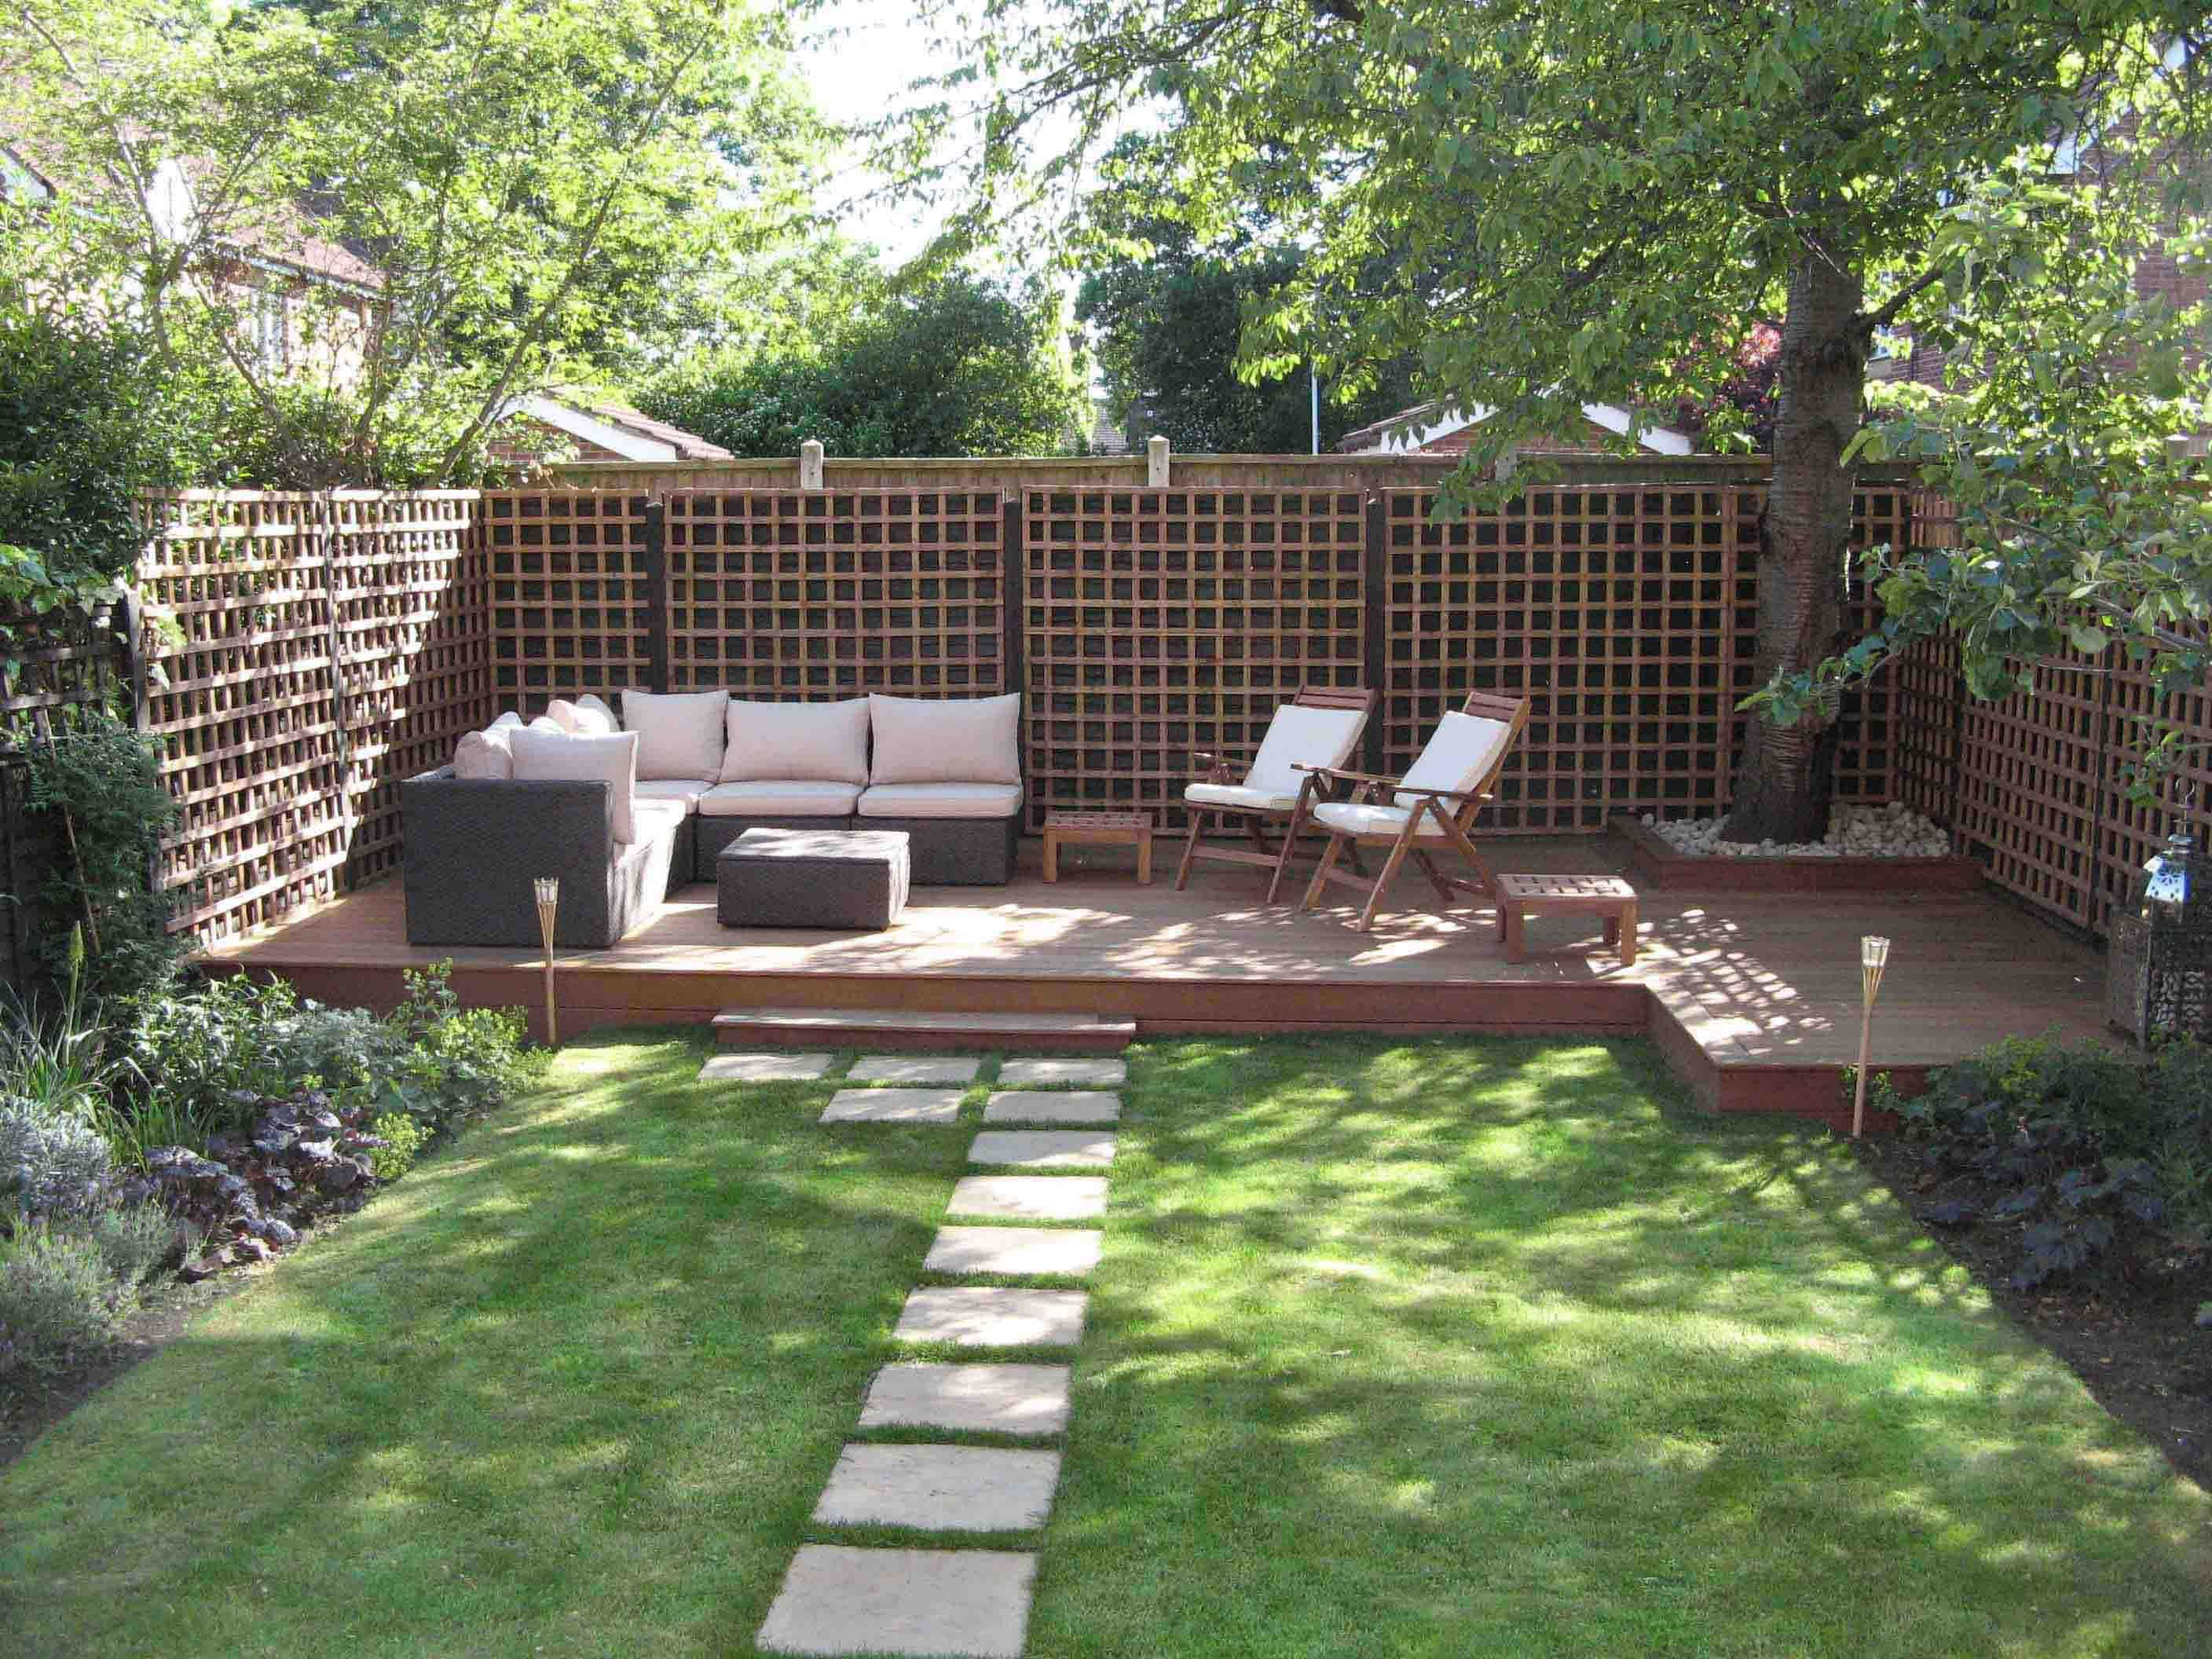 Garden Design Ideas nice garden design 25 Landscape Design For Small Spaces